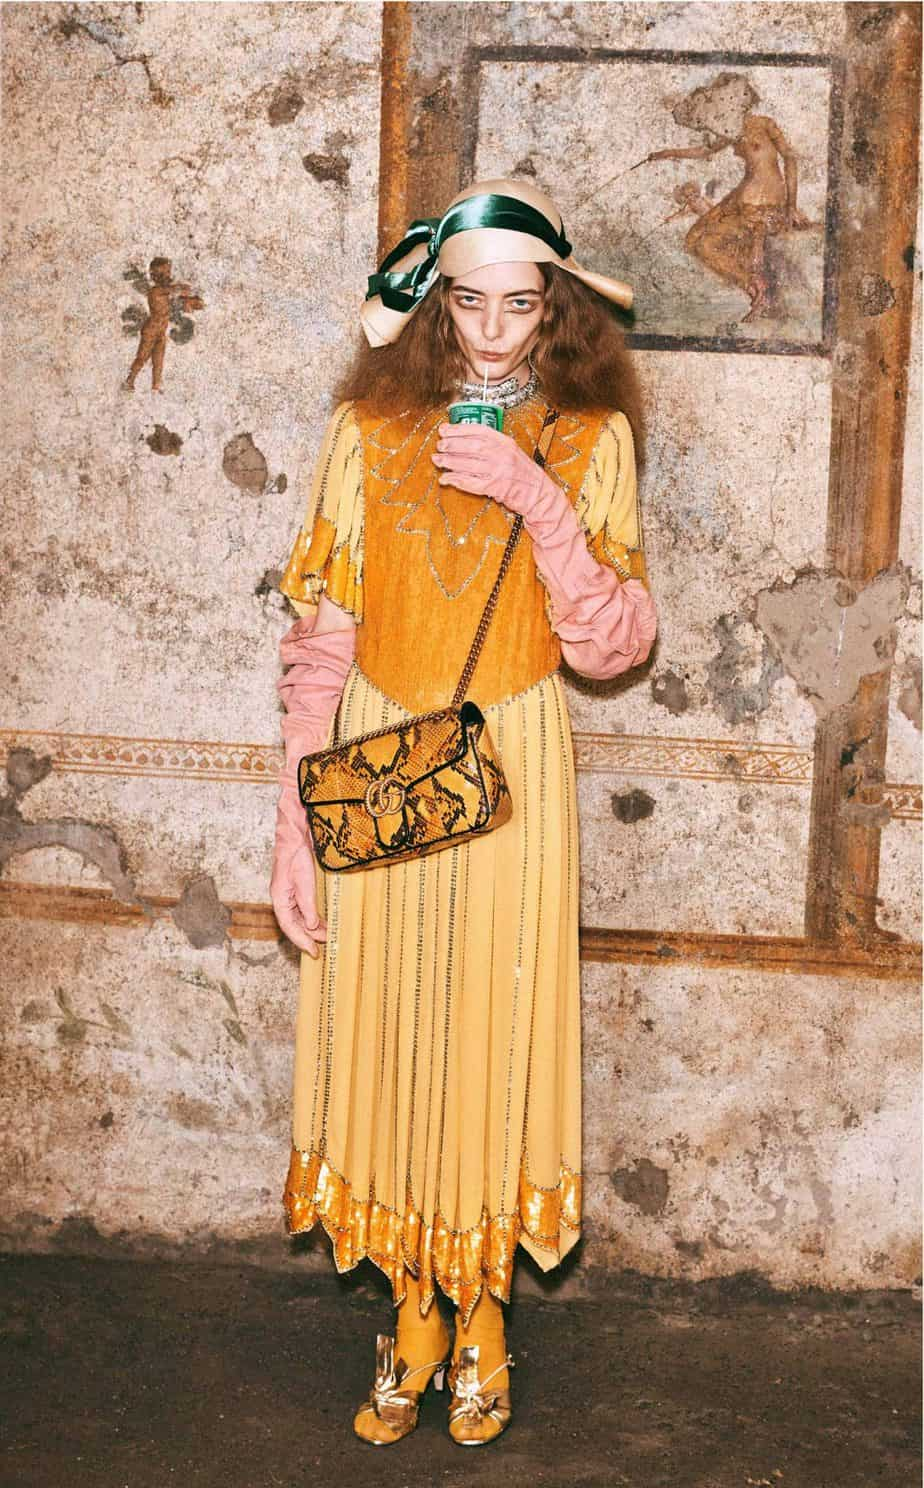 GUCCI, FALL 2019. WOMEN'S FASHION, Photographer Harmony Korine, Art Director, Christopher Simmonds - 95